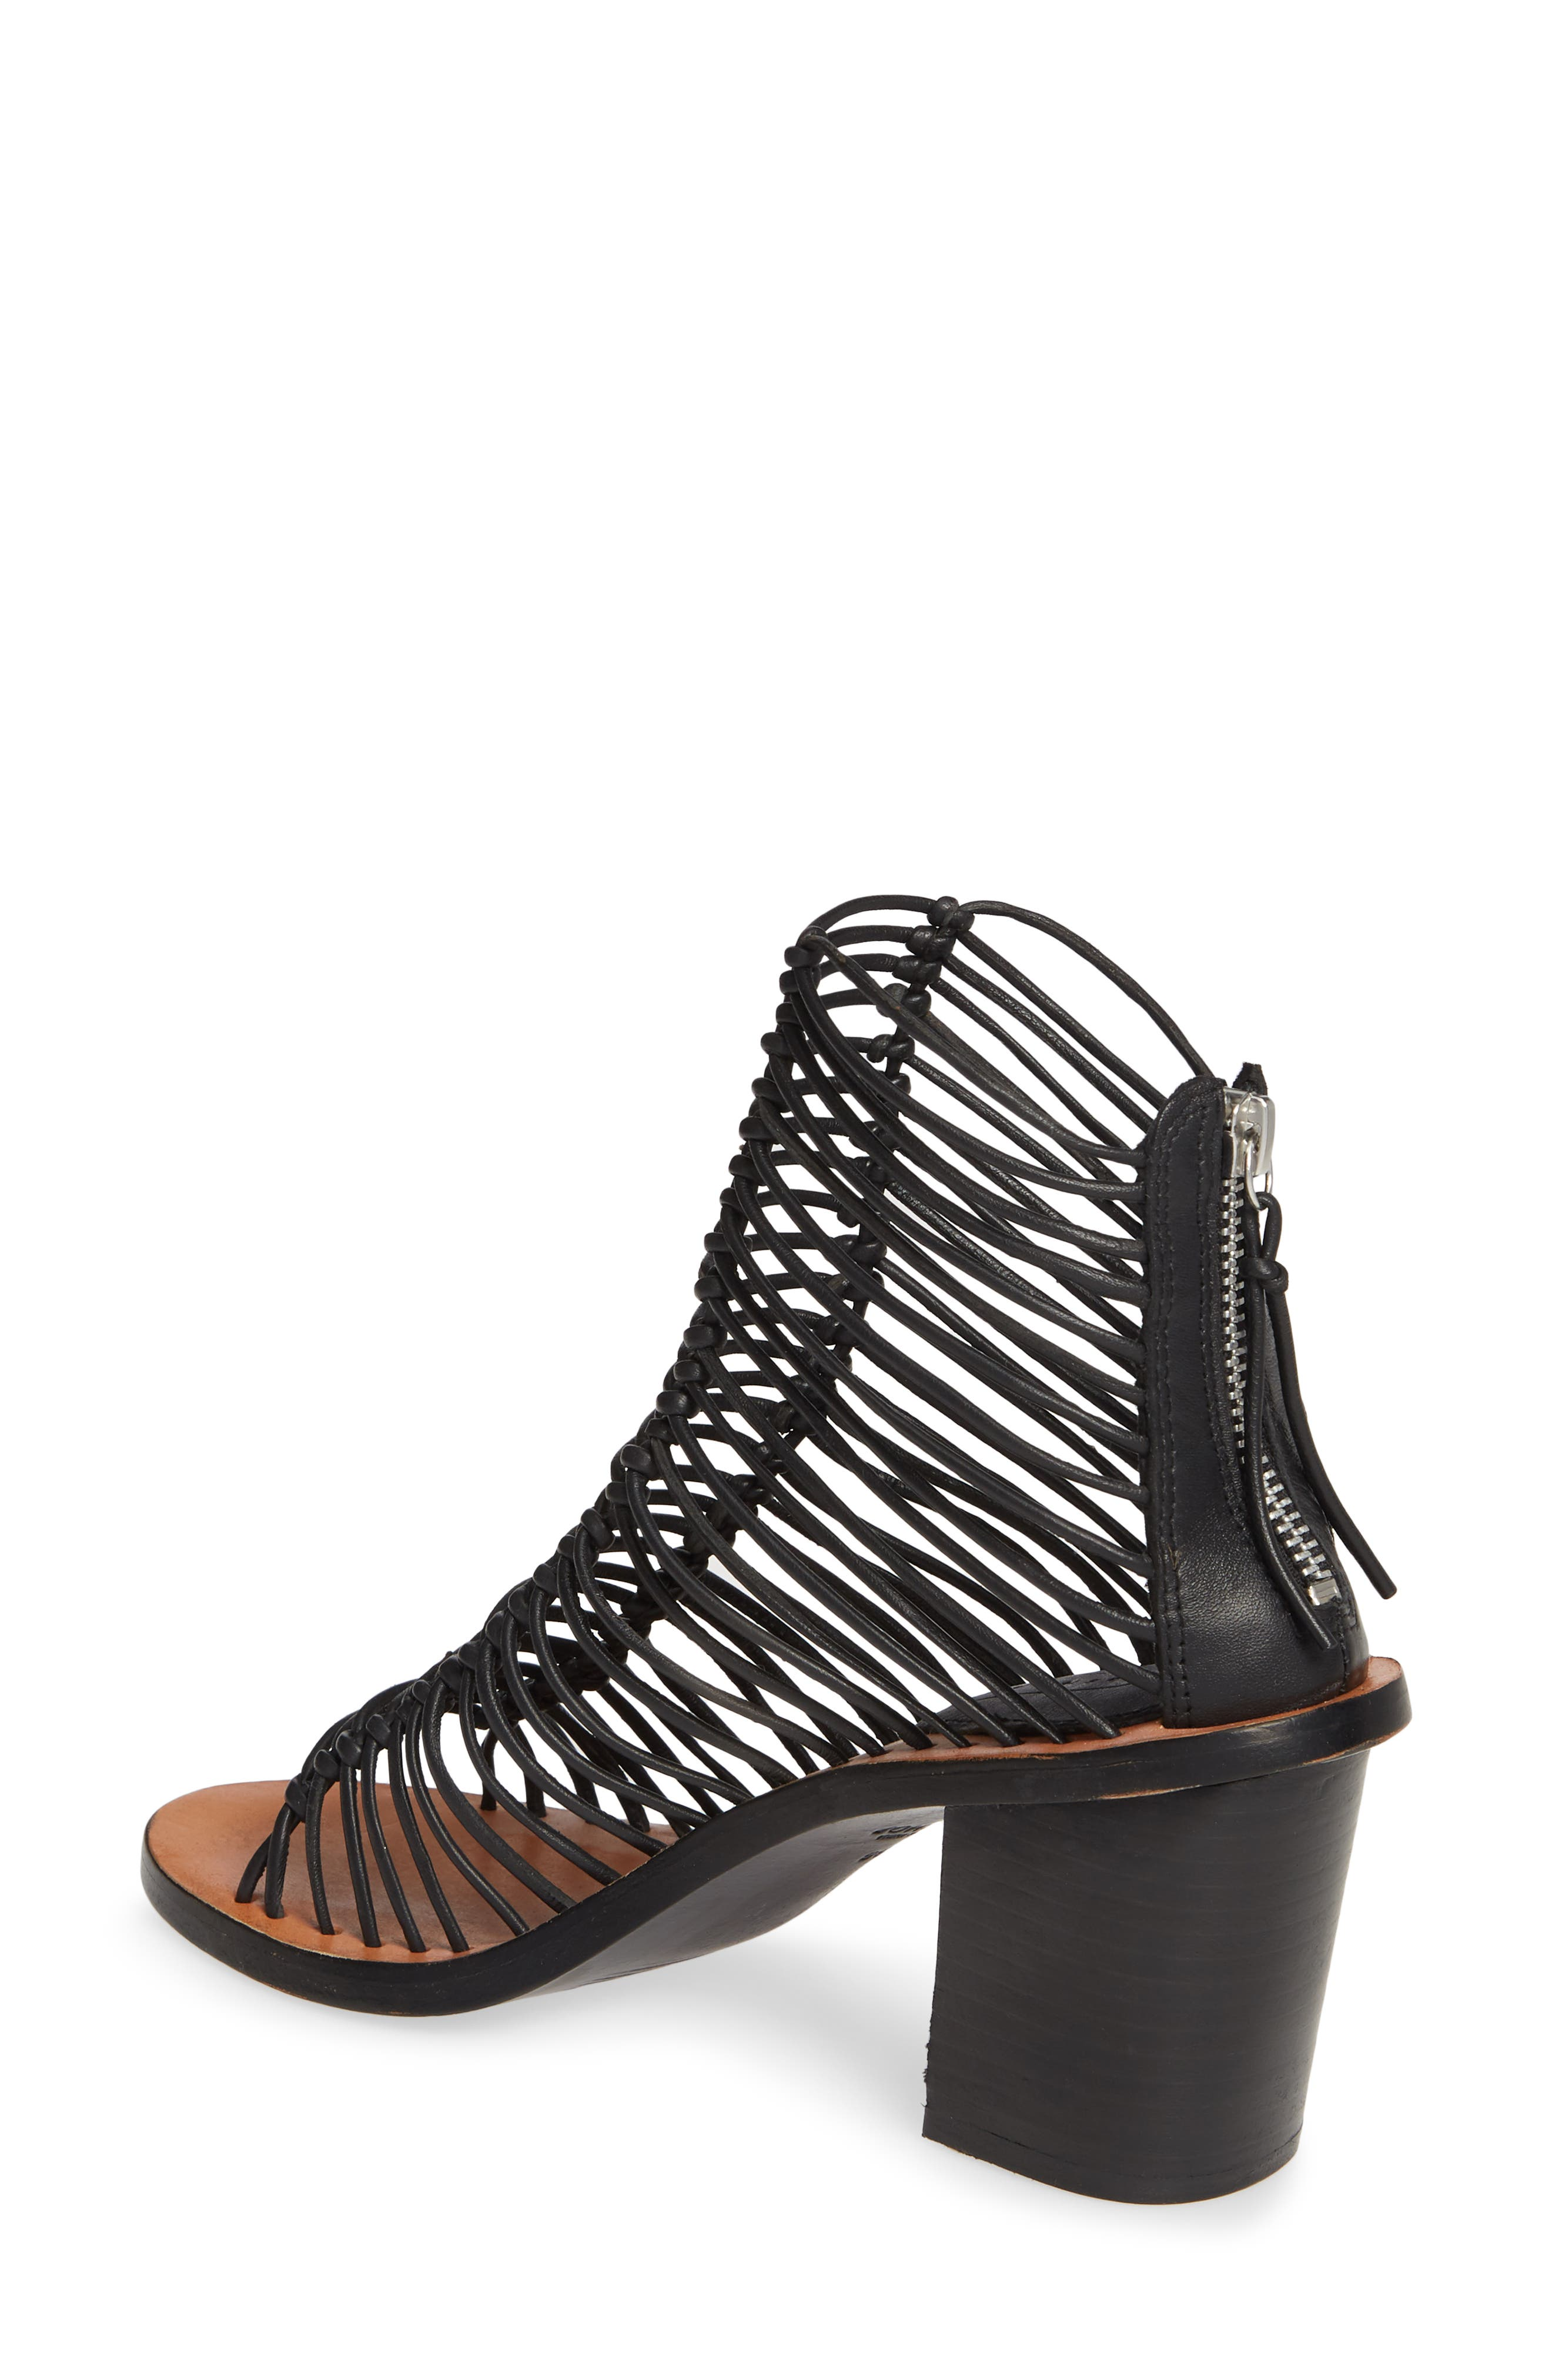 TOPSHOP, Narly Knotted Bootie Sandal, Alternate thumbnail 2, color, BLACK